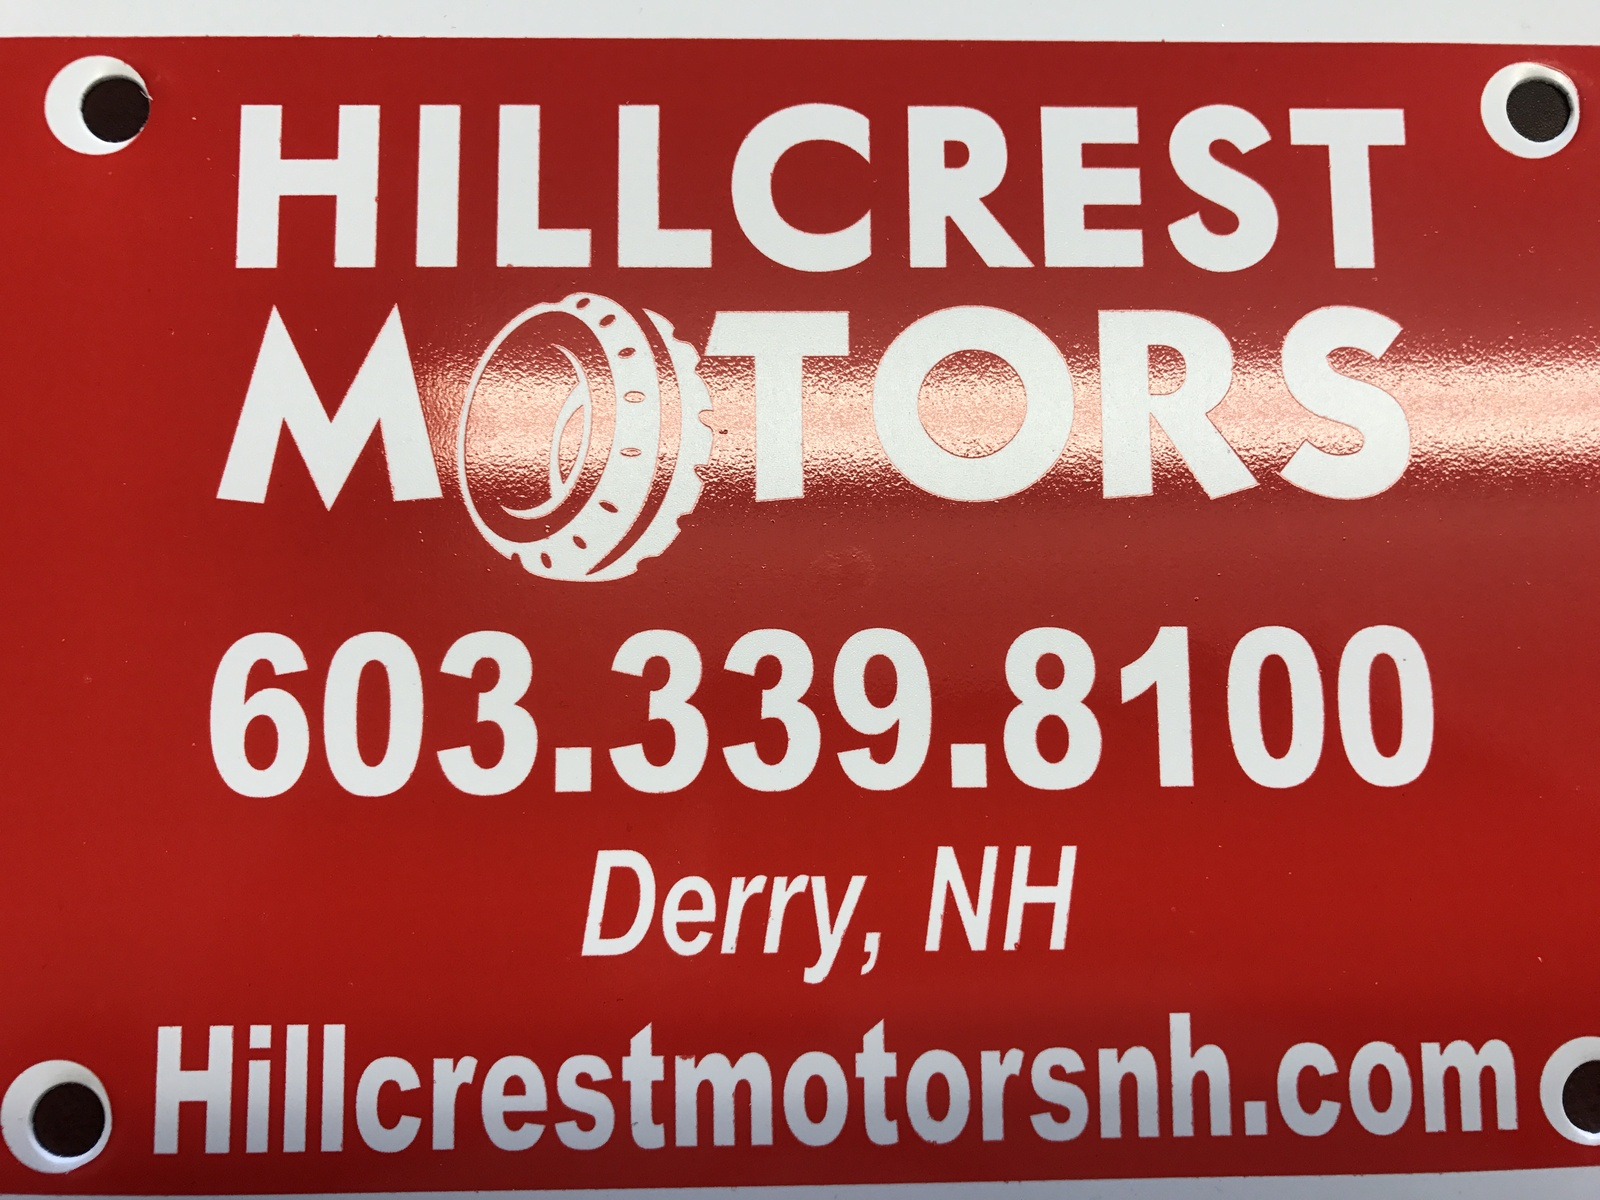 Hillcrest Motors - Derry, NH: Read Consumer reviews, Browse Used and ...